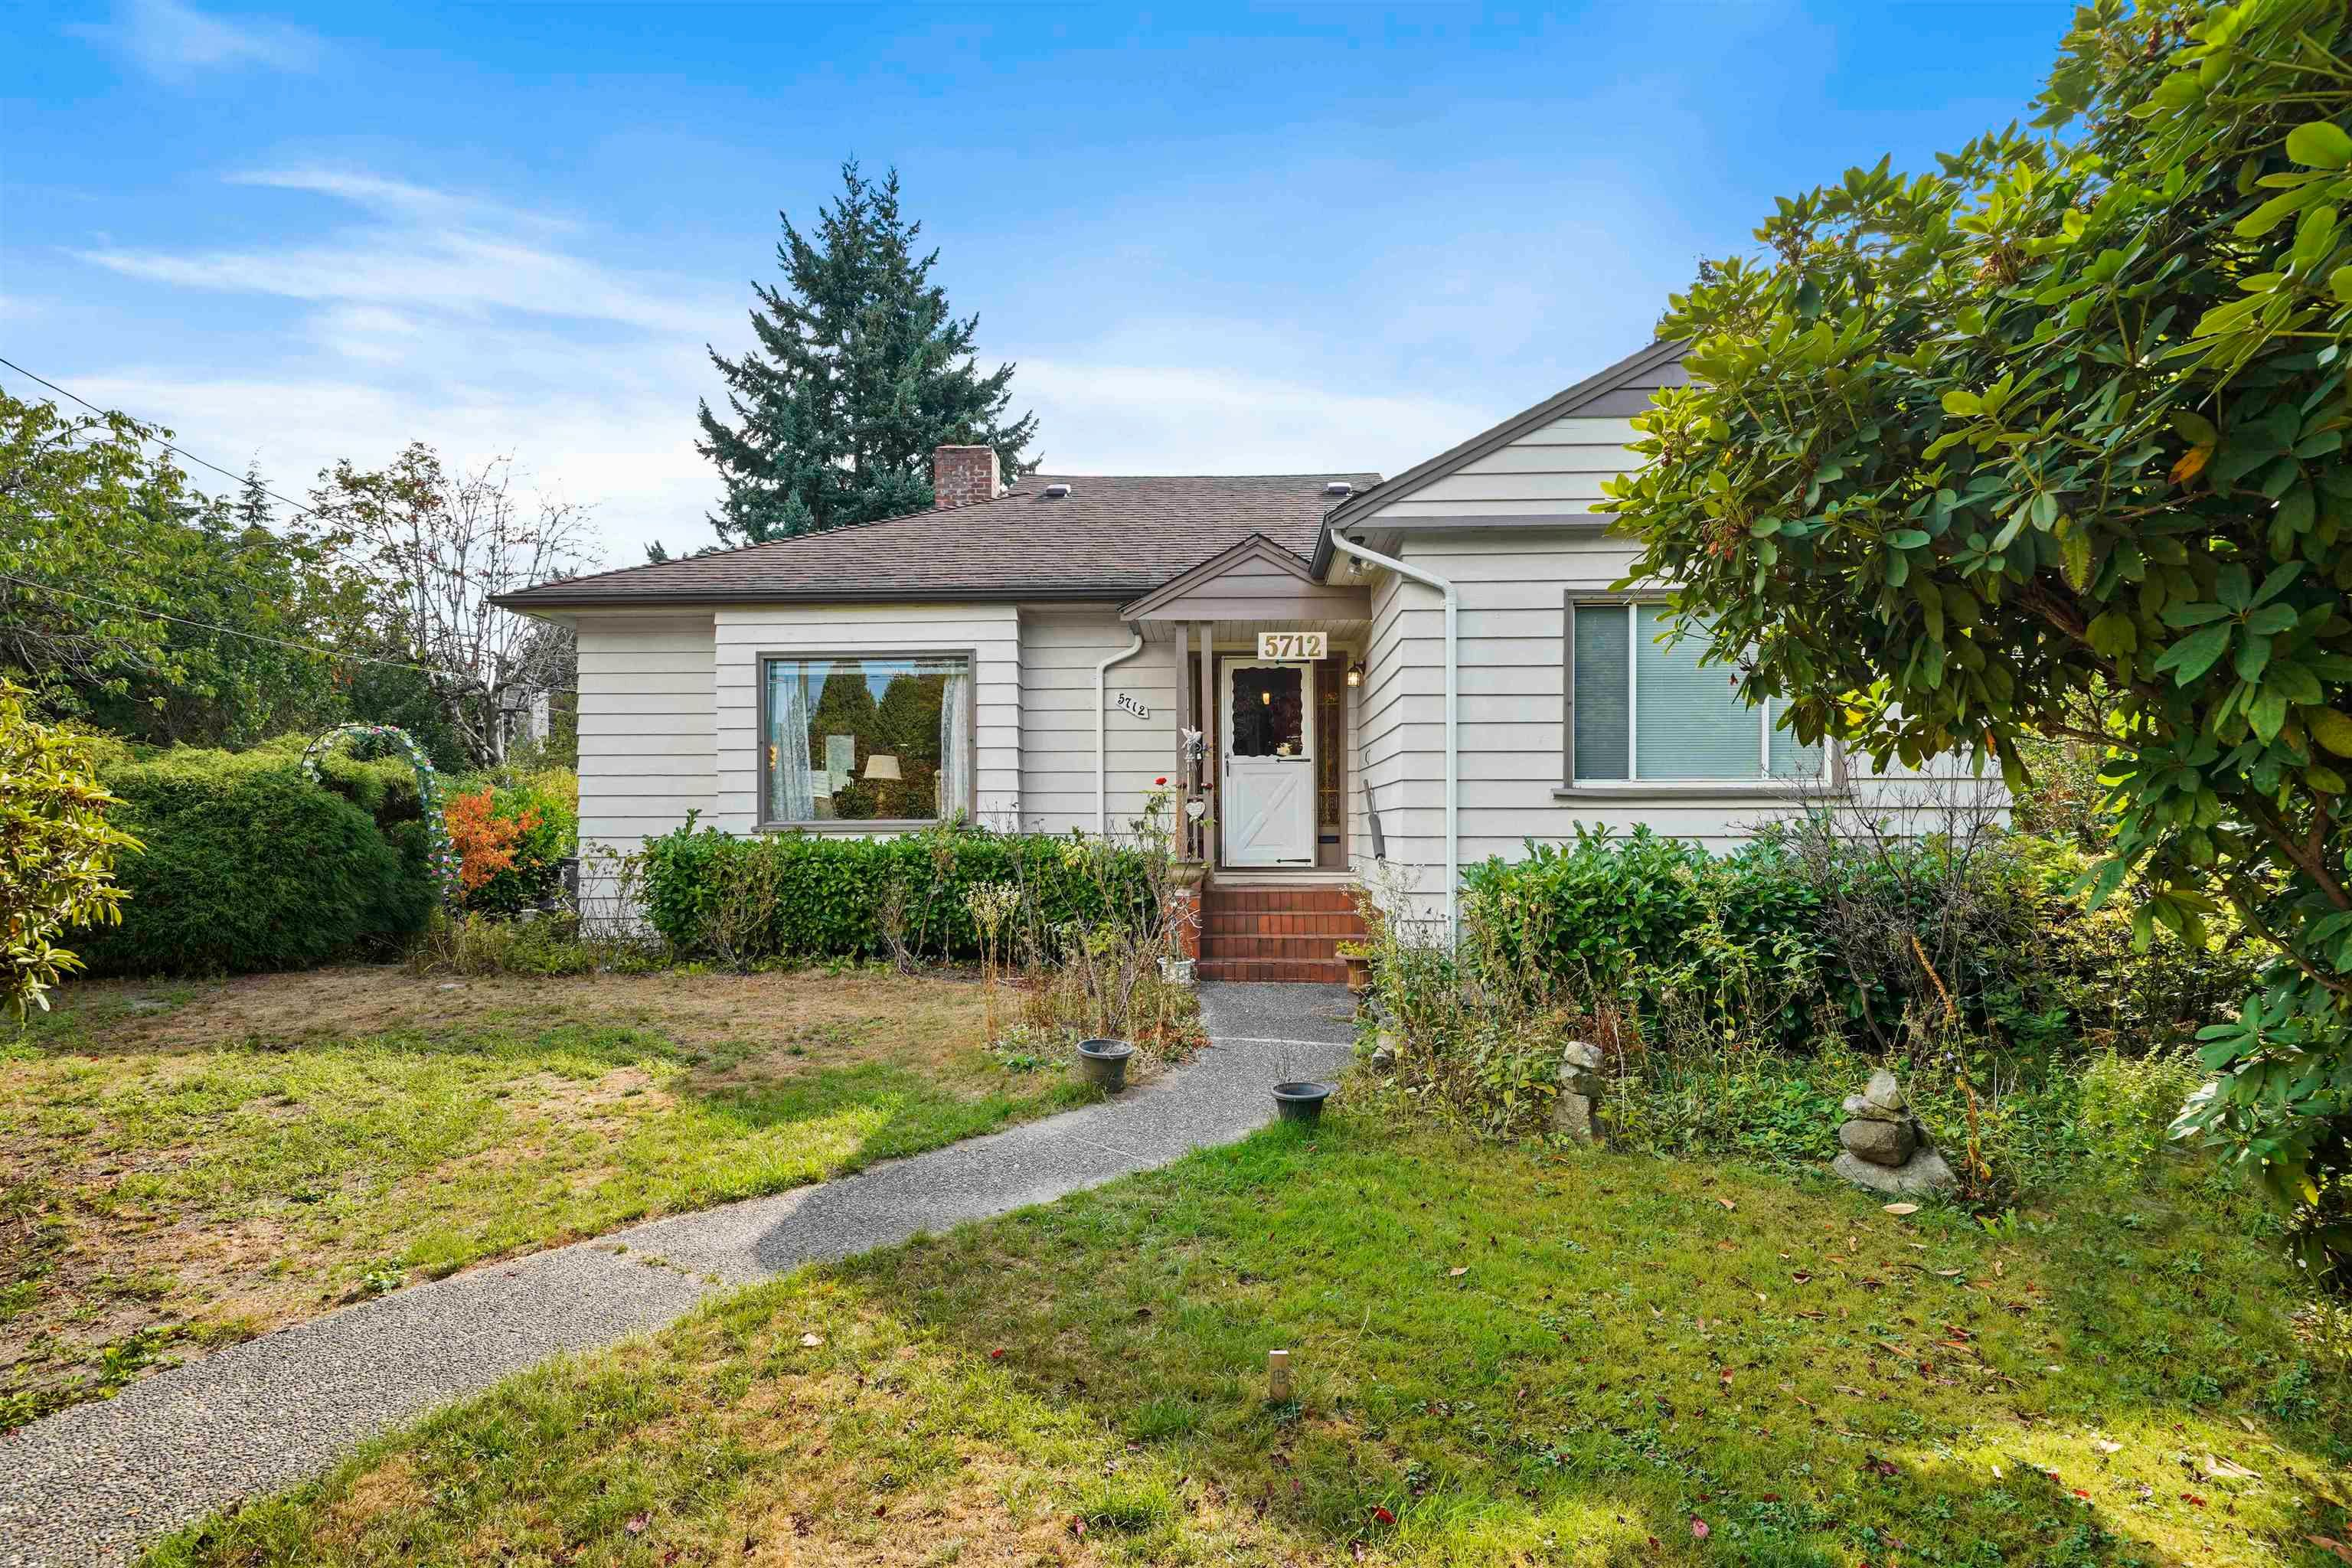 Main Photo: 5712 CROWN Street in Vancouver: Southlands House for sale (Vancouver West)  : MLS®# R2619308